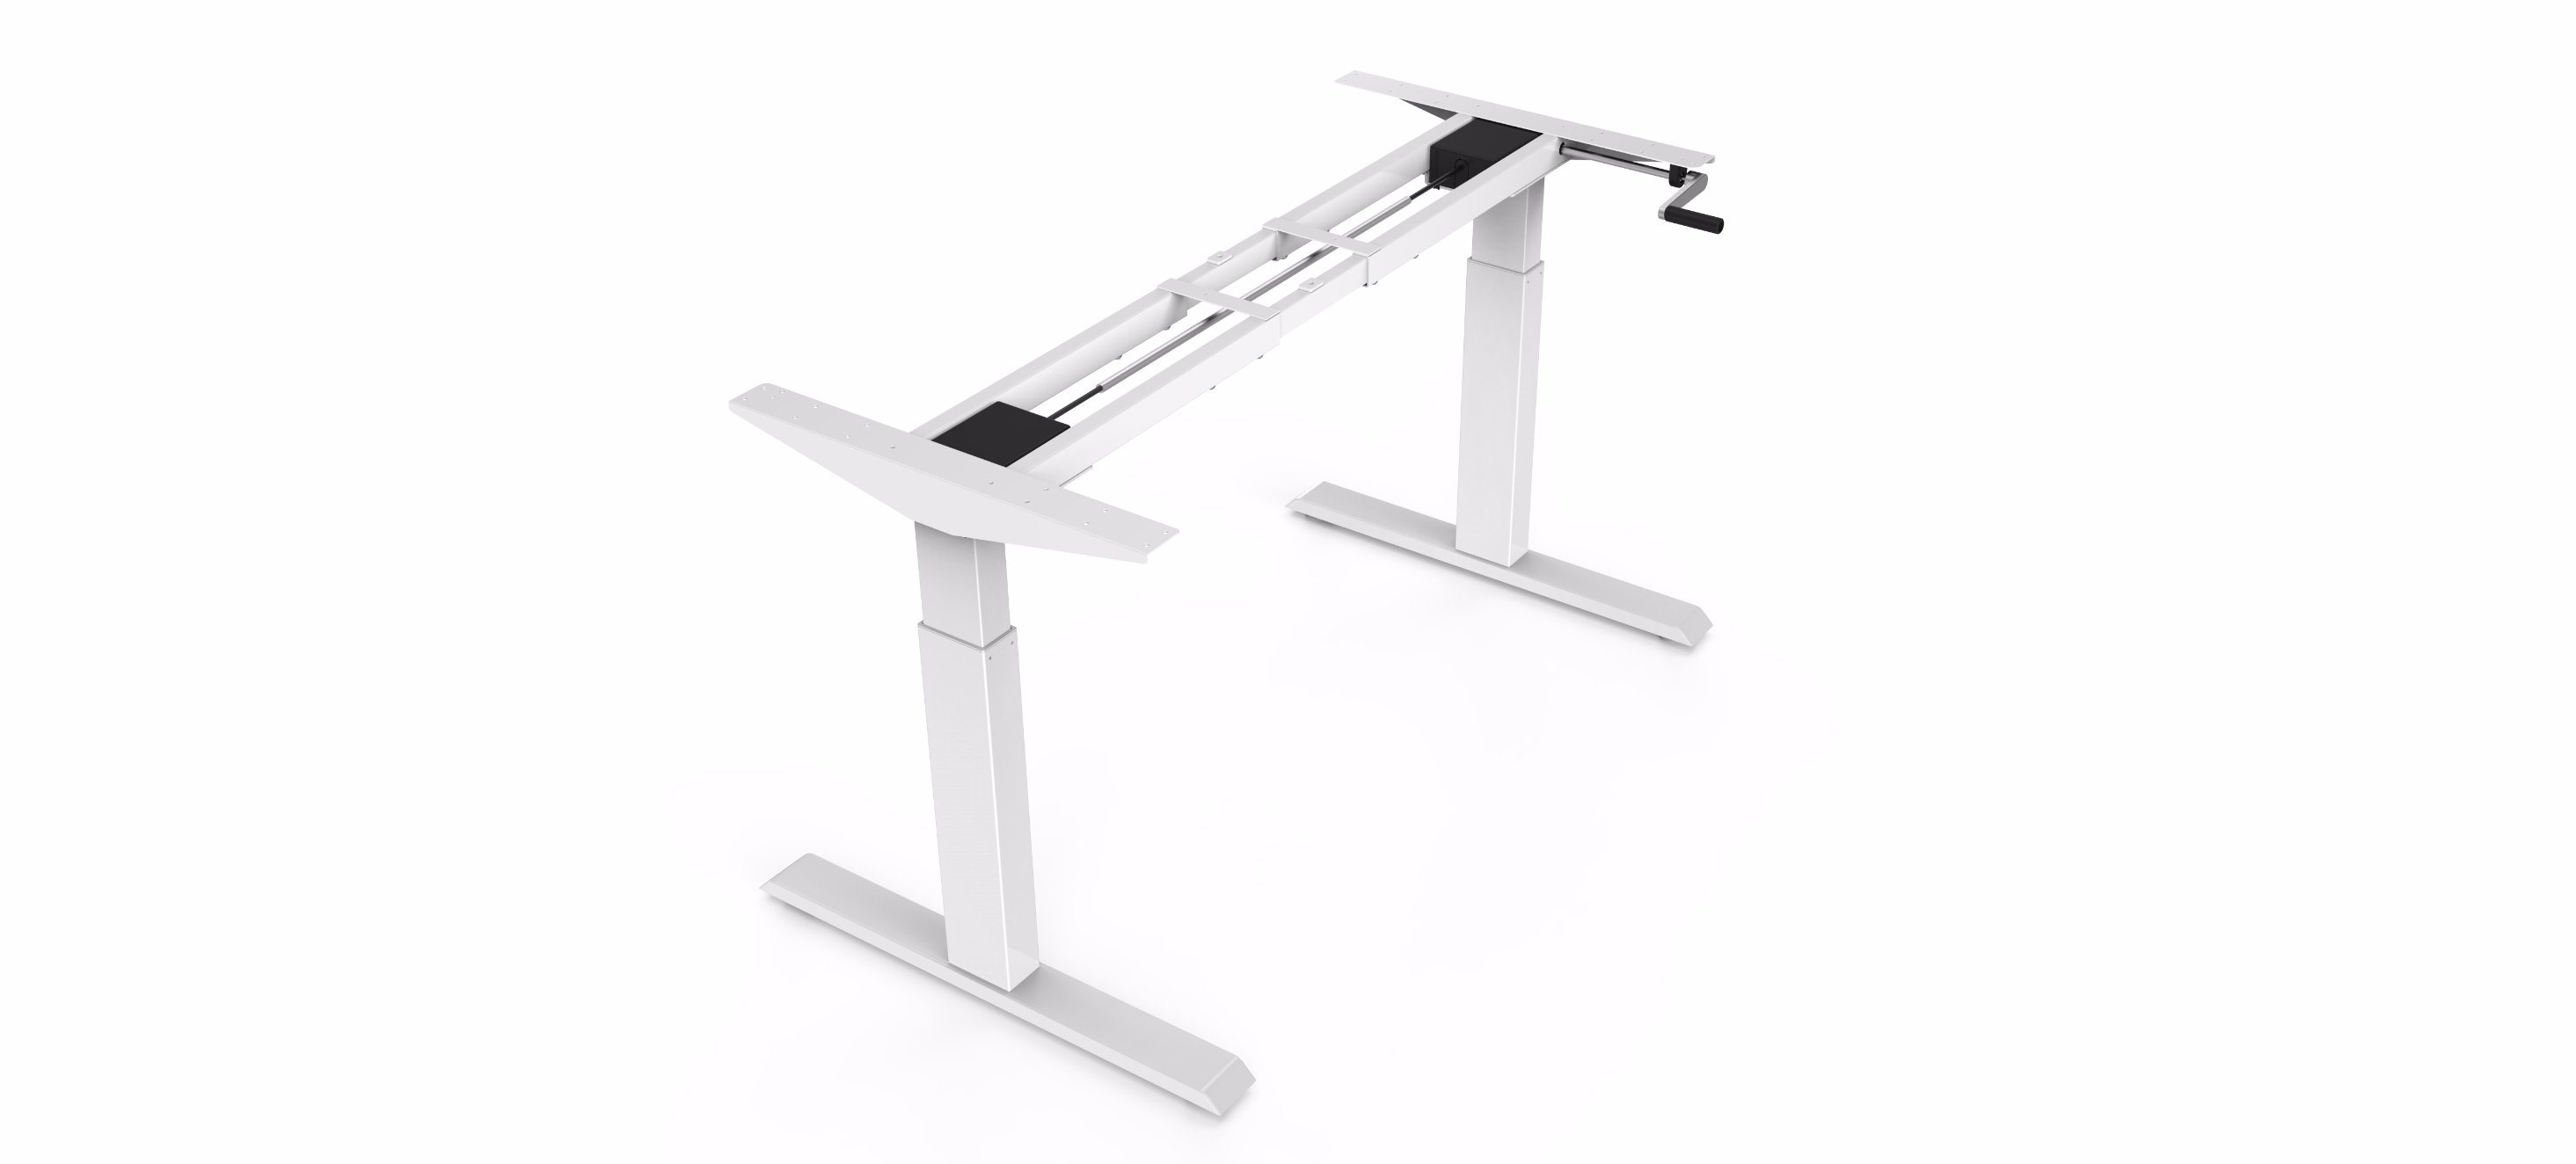 Crank Handle Height Adjustable Desk/Lift Desk/Standing Desk (HT101)